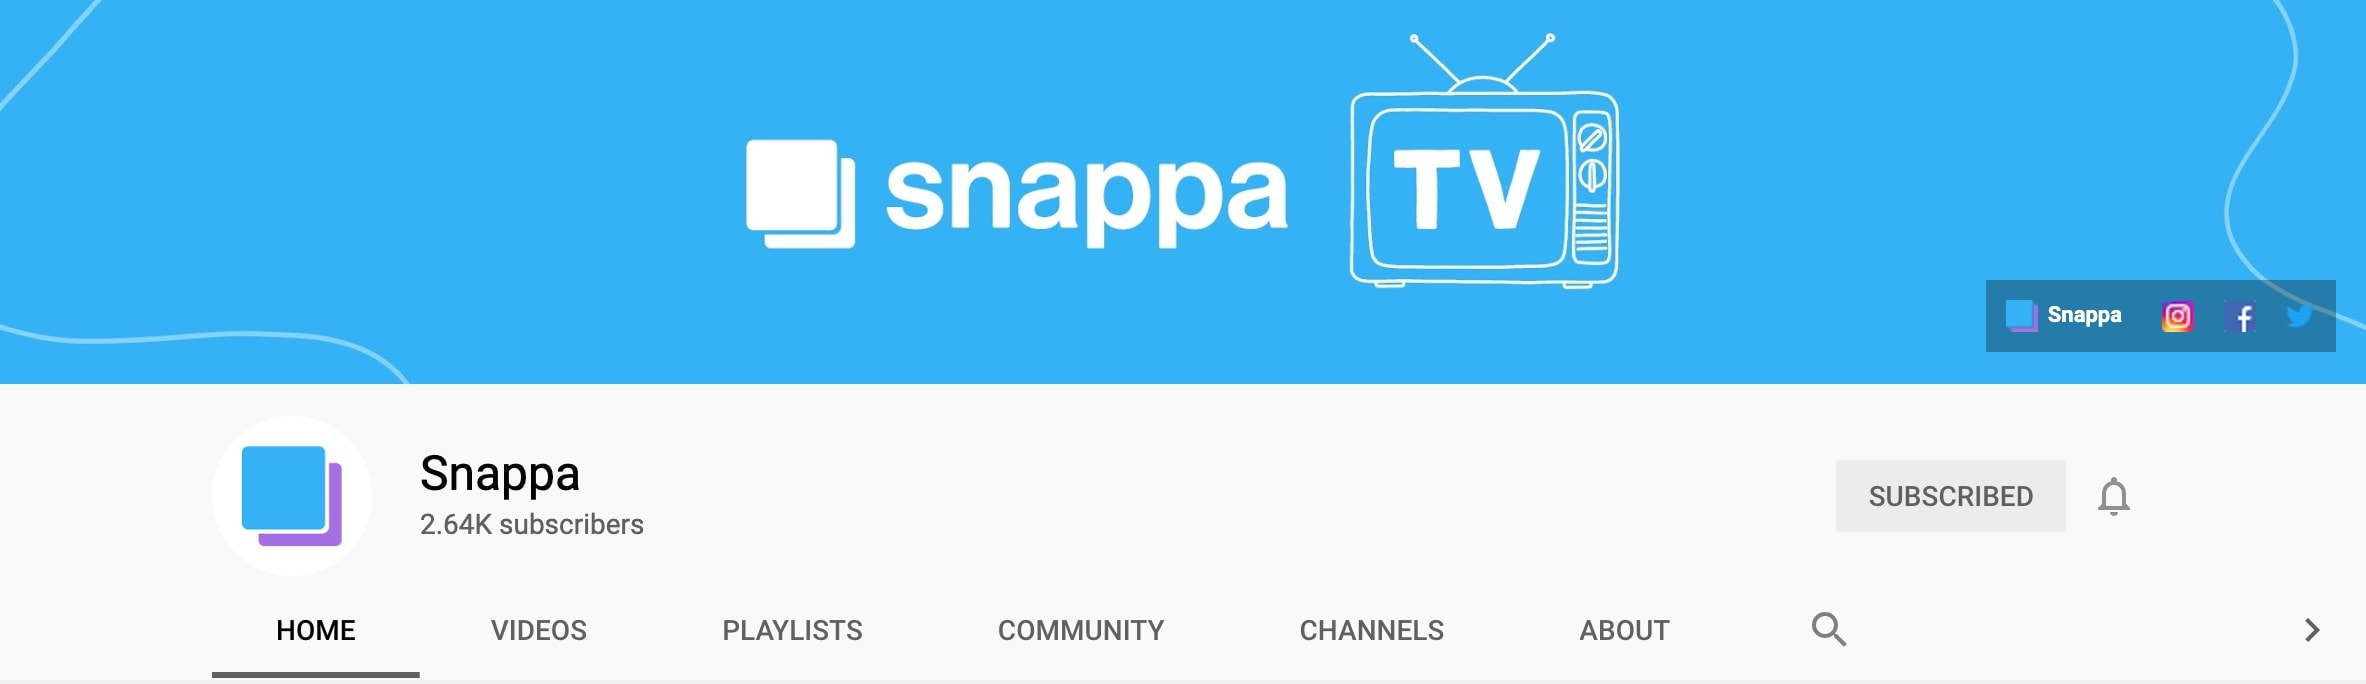 Snappa YouTube channel art example